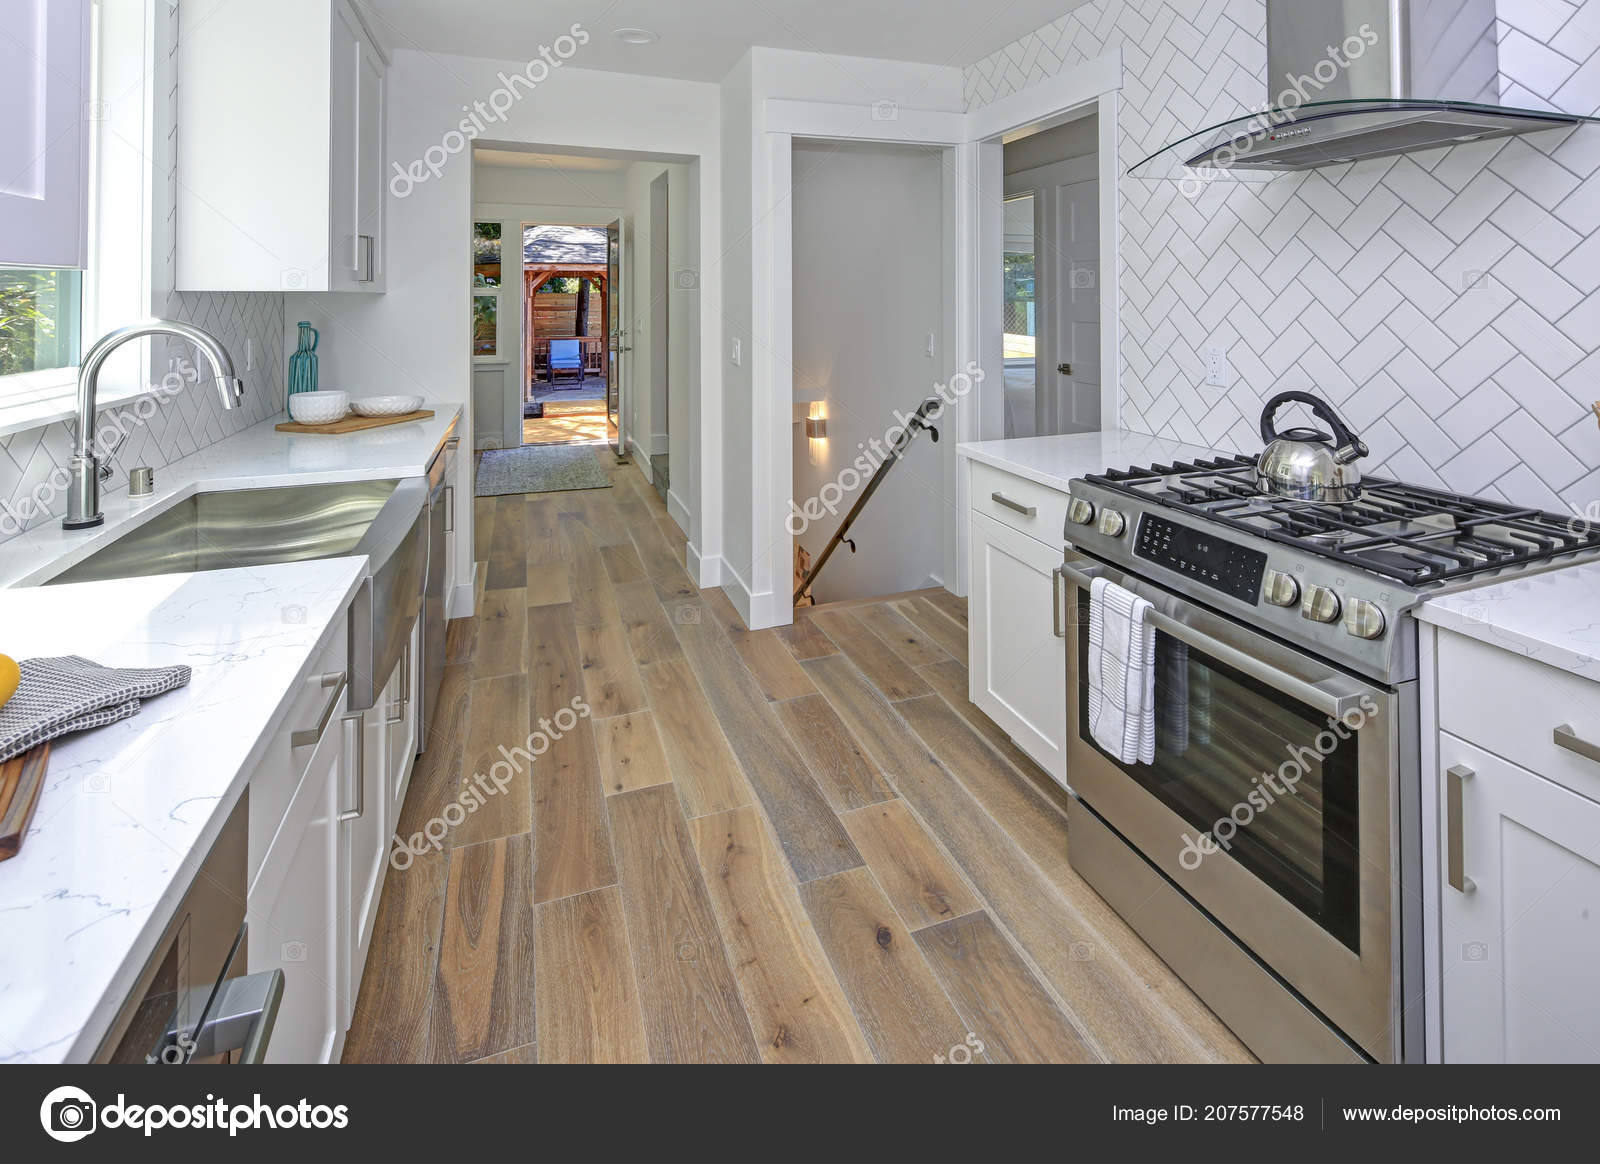 Remodeled Kitchen Pure White Cabinets Marble Countertops Herringbone Backsplash Stainless Stock Photo C Alabn 207577548